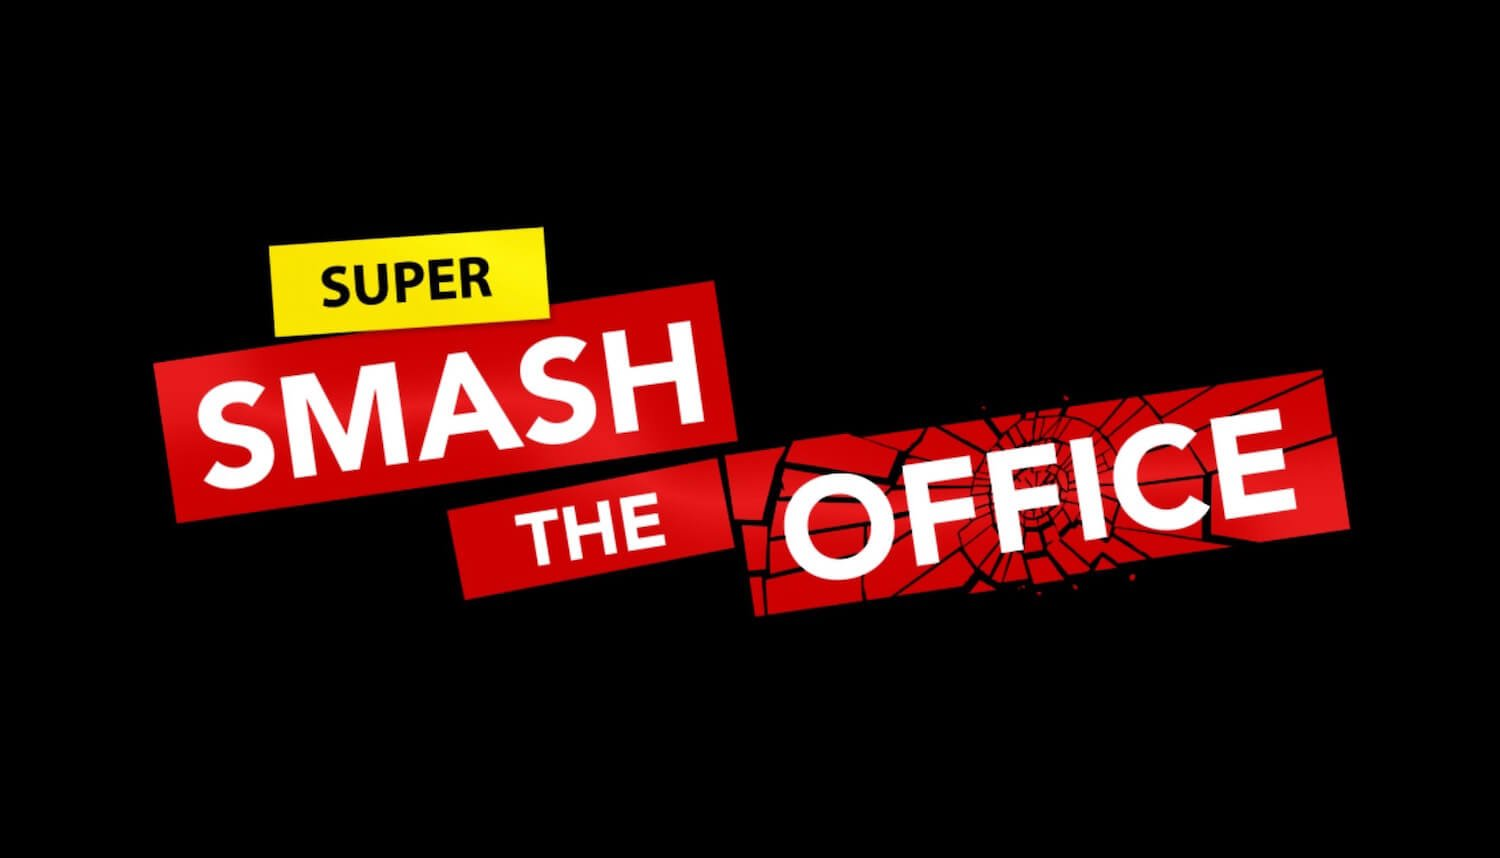 Smashy_Office_1